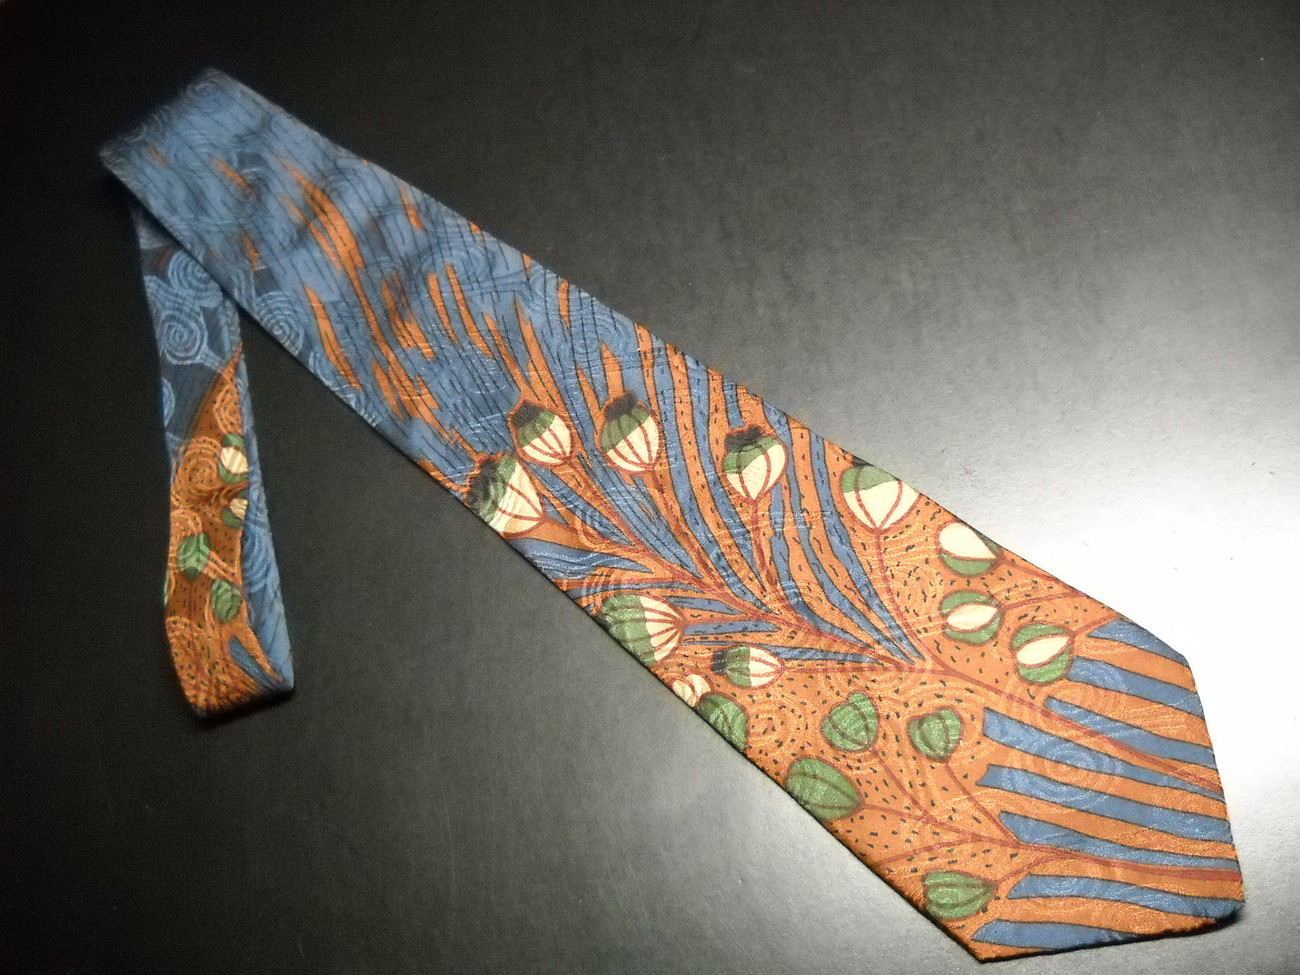 Tie desert designs jimmy pike flower buds on blues and browns 04